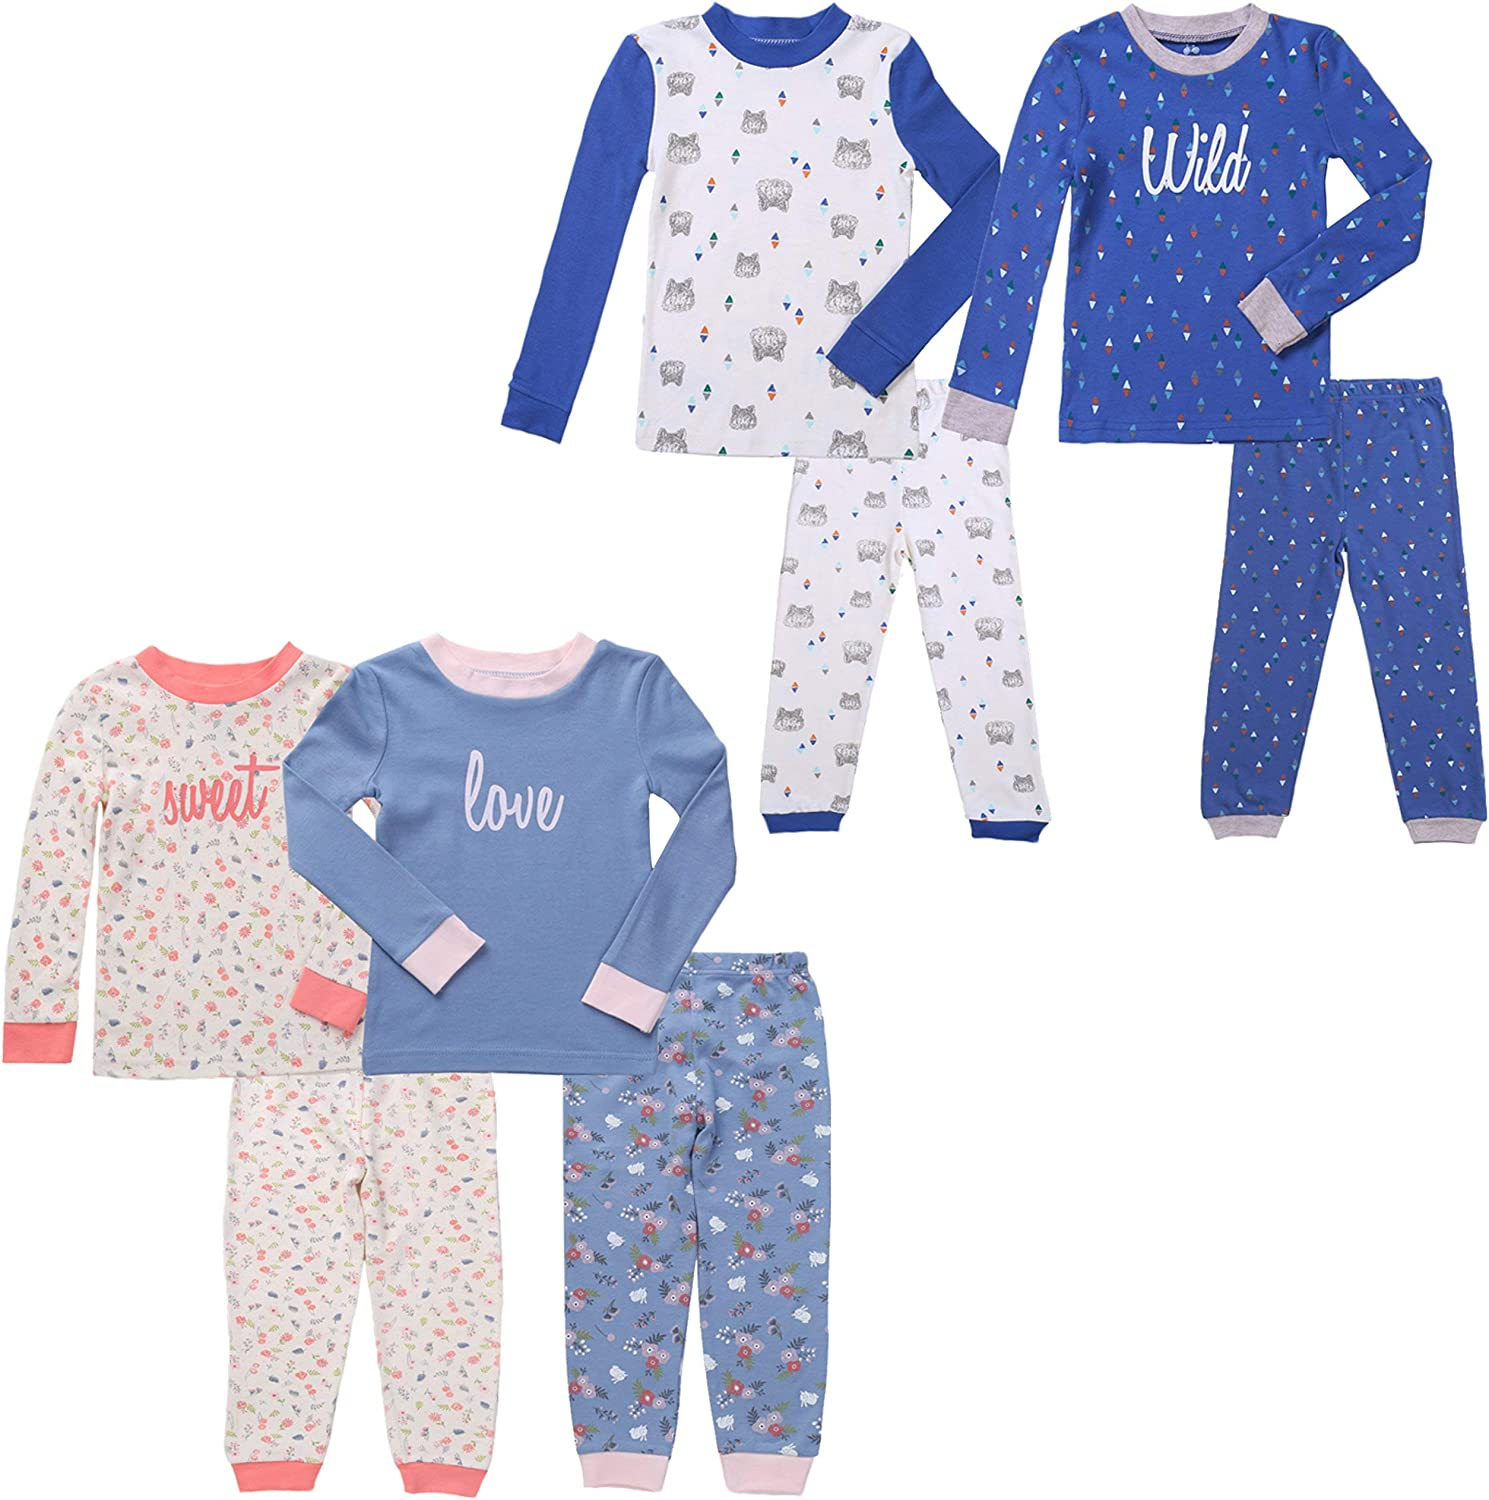 Twin Outfits for Boy and Girl Including Footies Bodysuits /& Pajamas Gifts Set